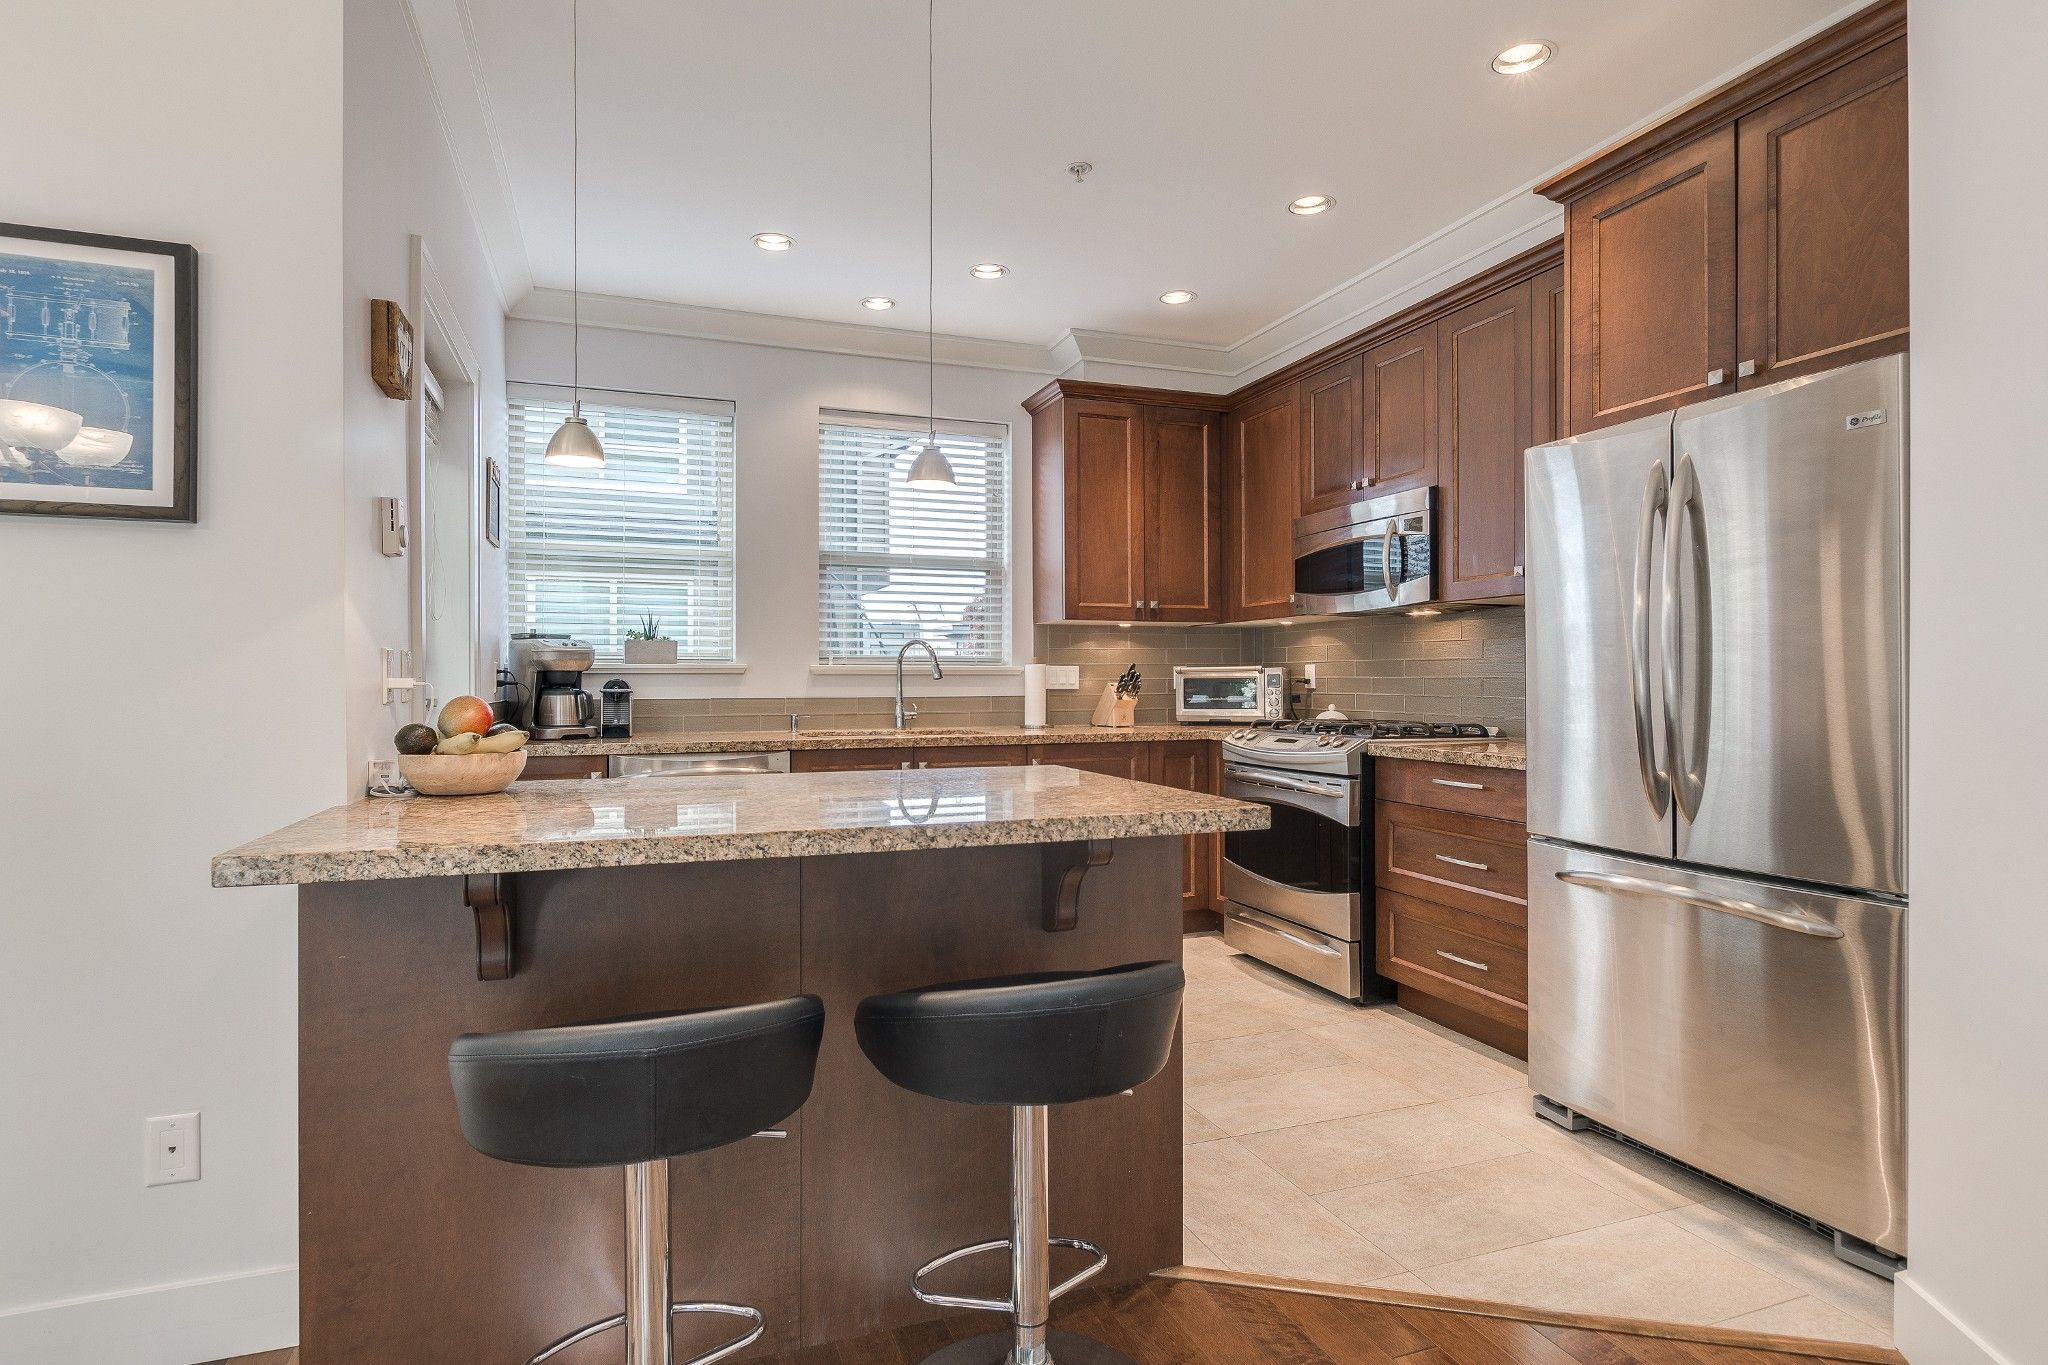 Photo 4: Photos: 24 897 Premier Street in : Lynnmour Townhouse for sale (North Vancouver)